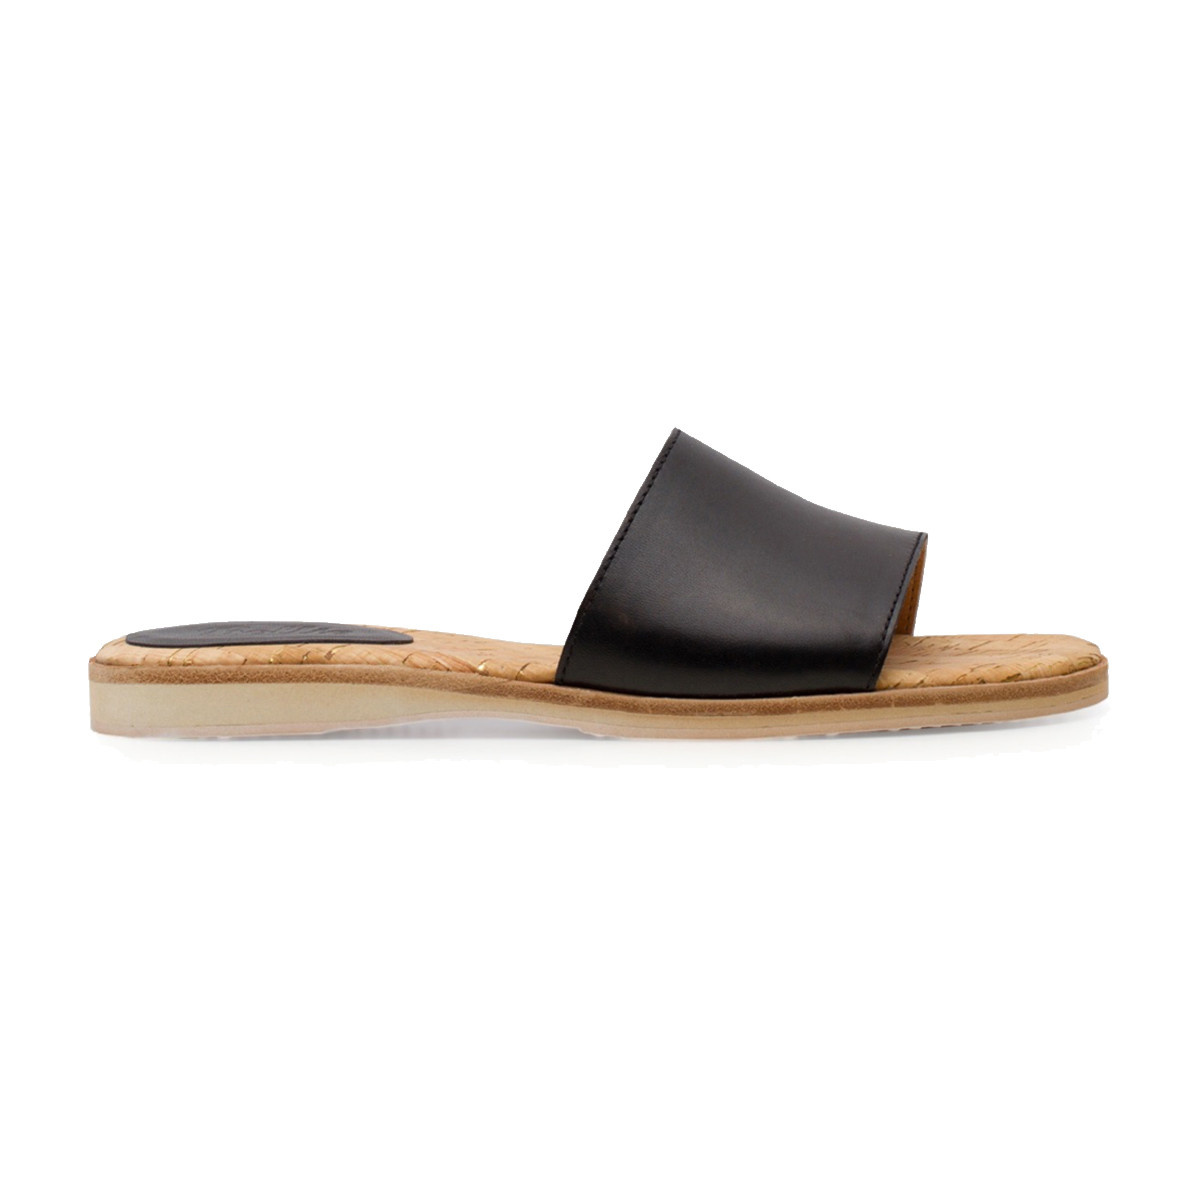 Rollie Rollie Sandal Slide Black